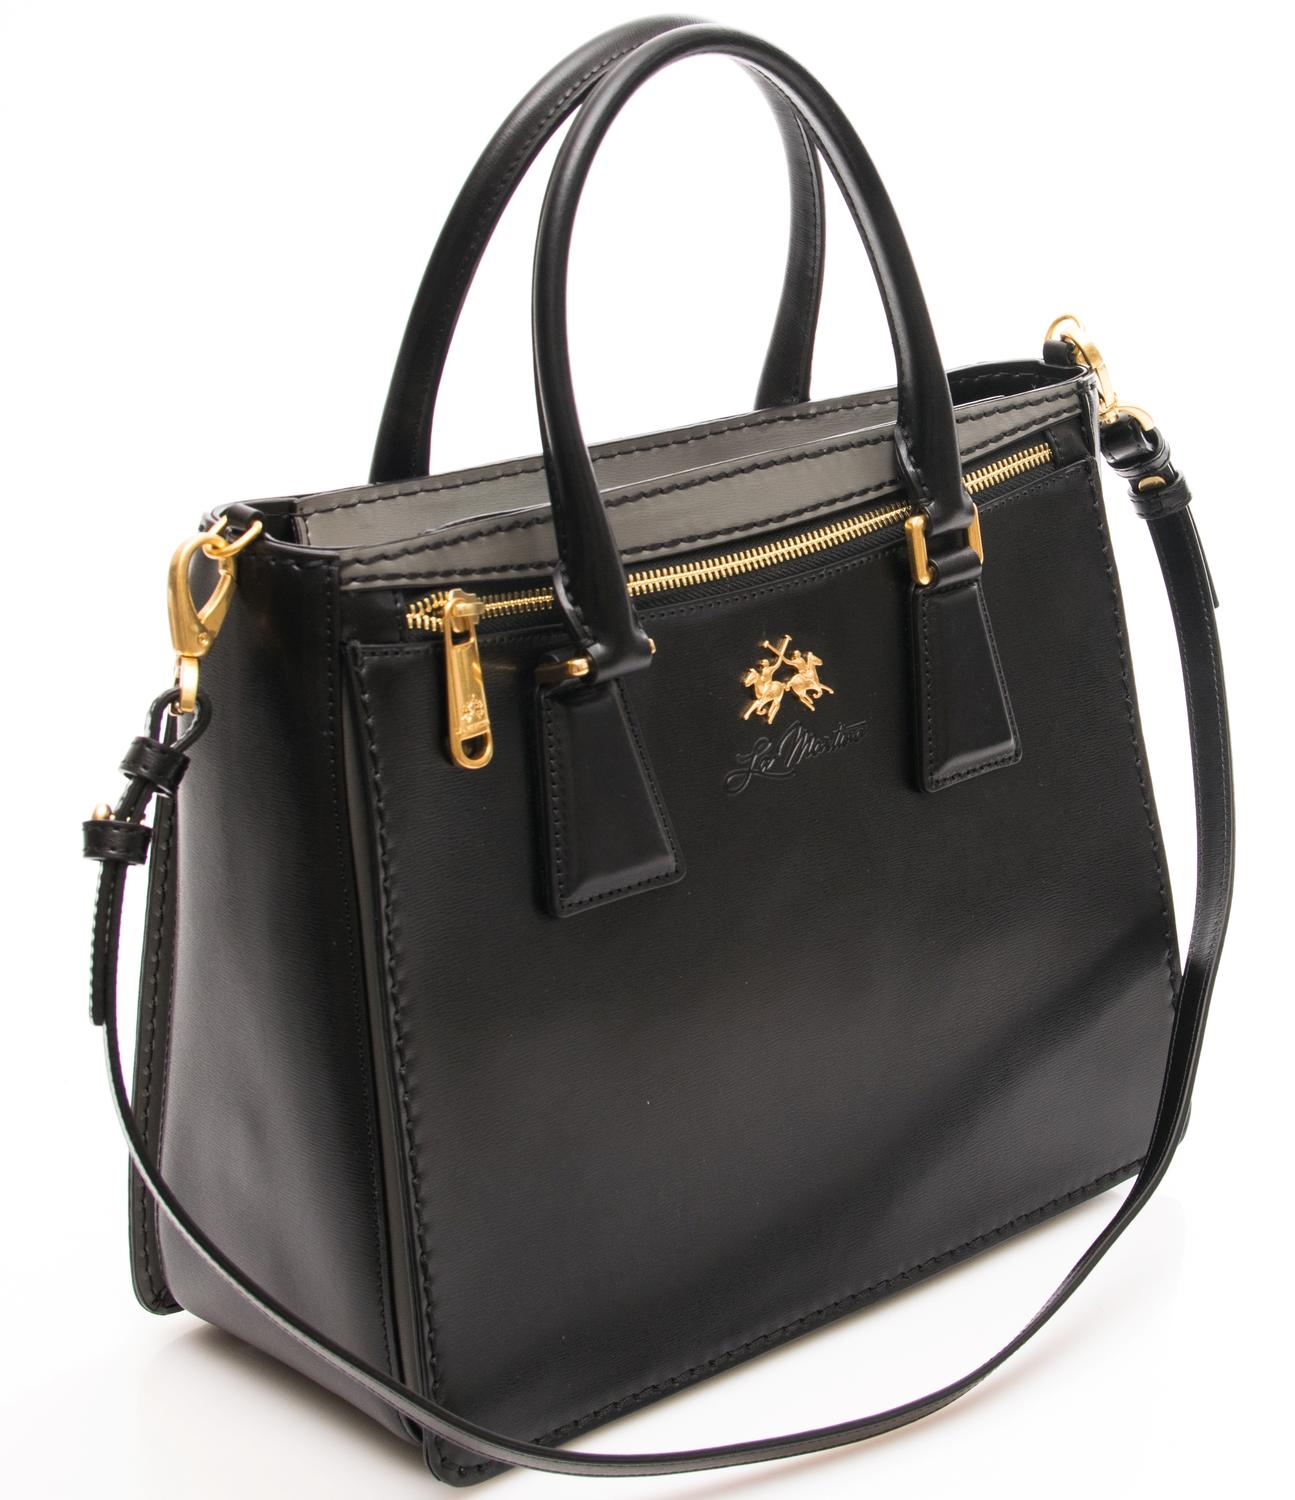 la martina constancia handbag shoulder bag leather buy at outlet prices. Black Bedroom Furniture Sets. Home Design Ideas